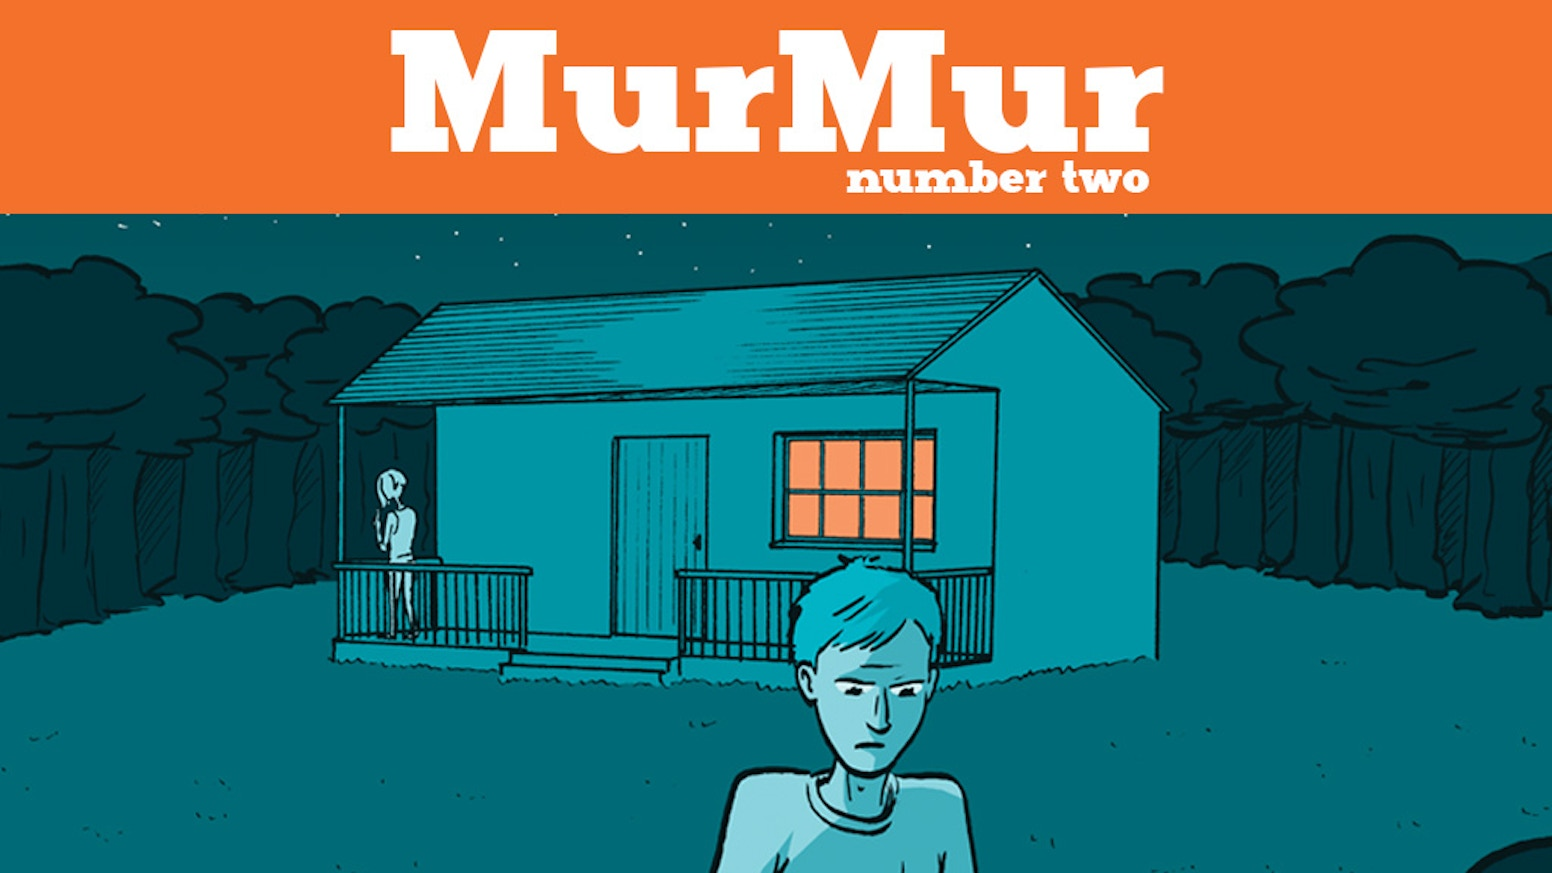 The 2nd issue of the comic book MurMur, a series collecting short stories.